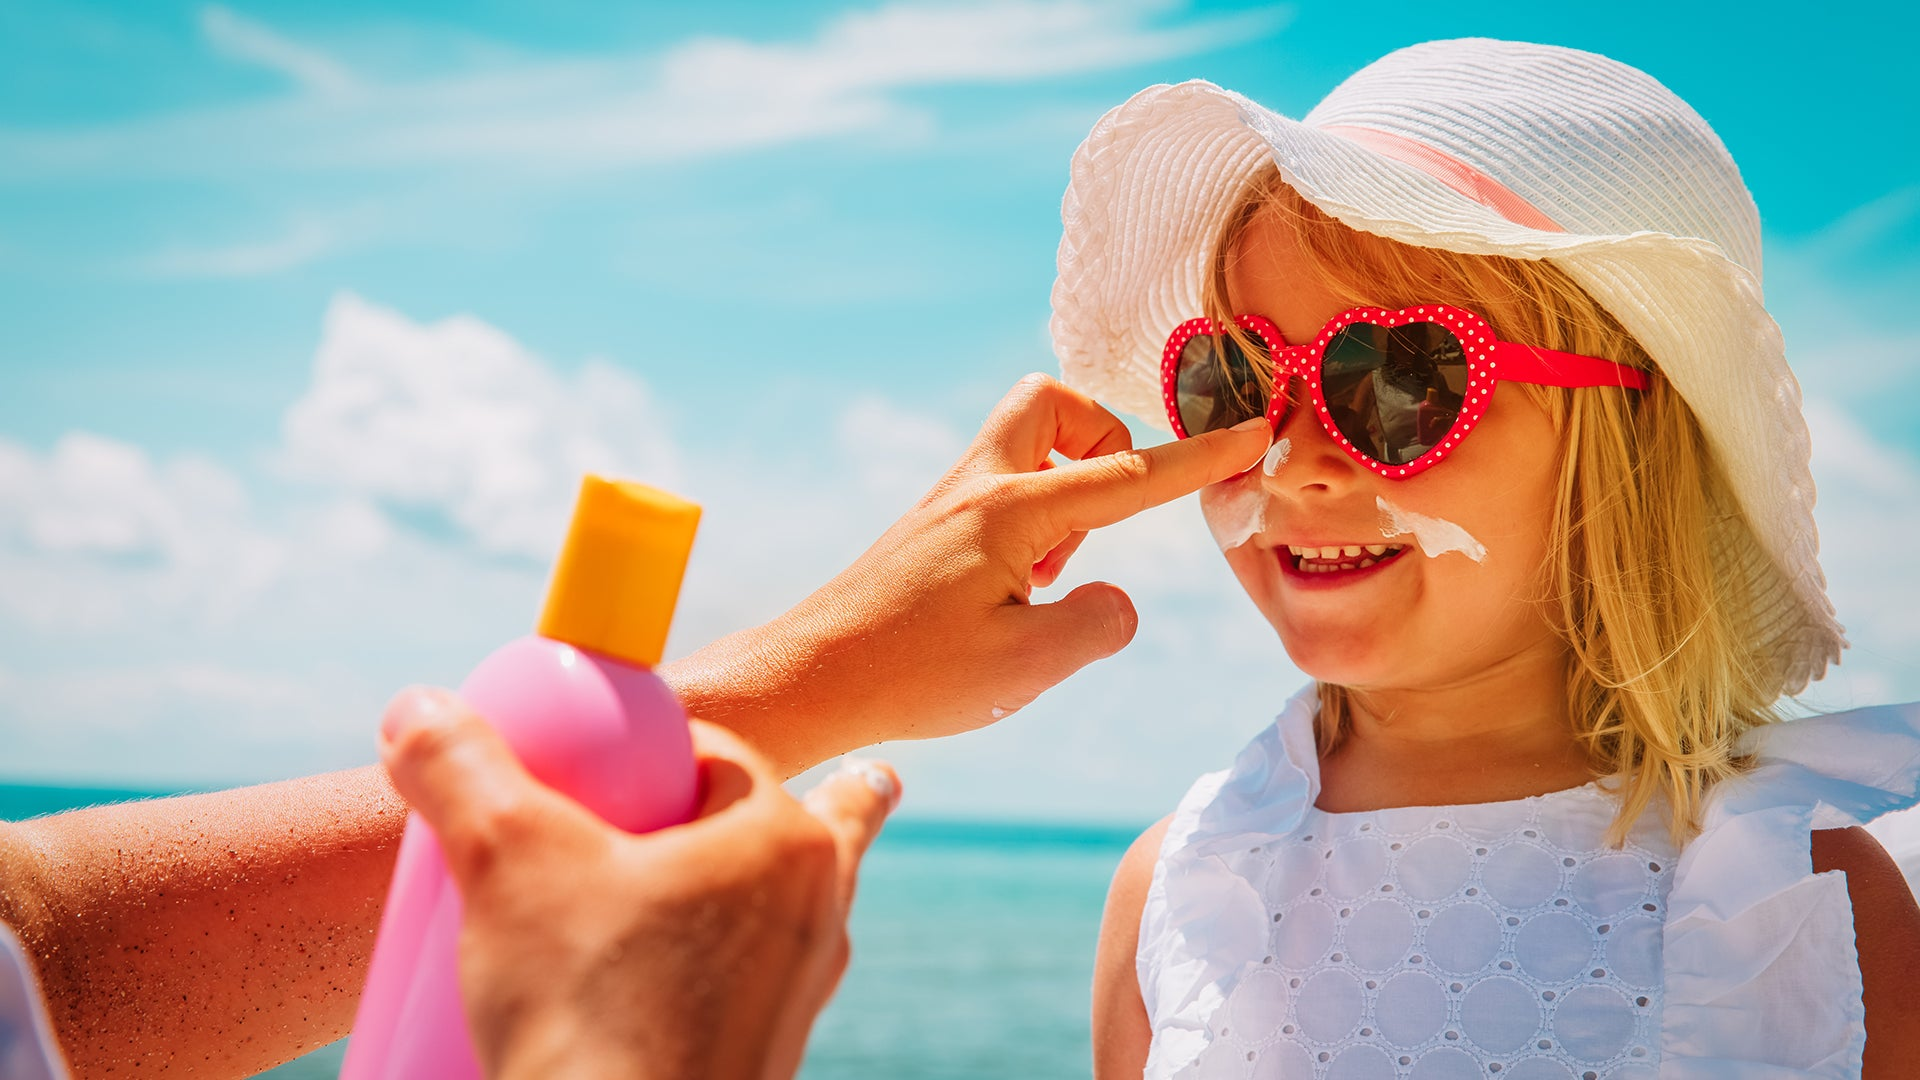 Kids Health: Sun Safety